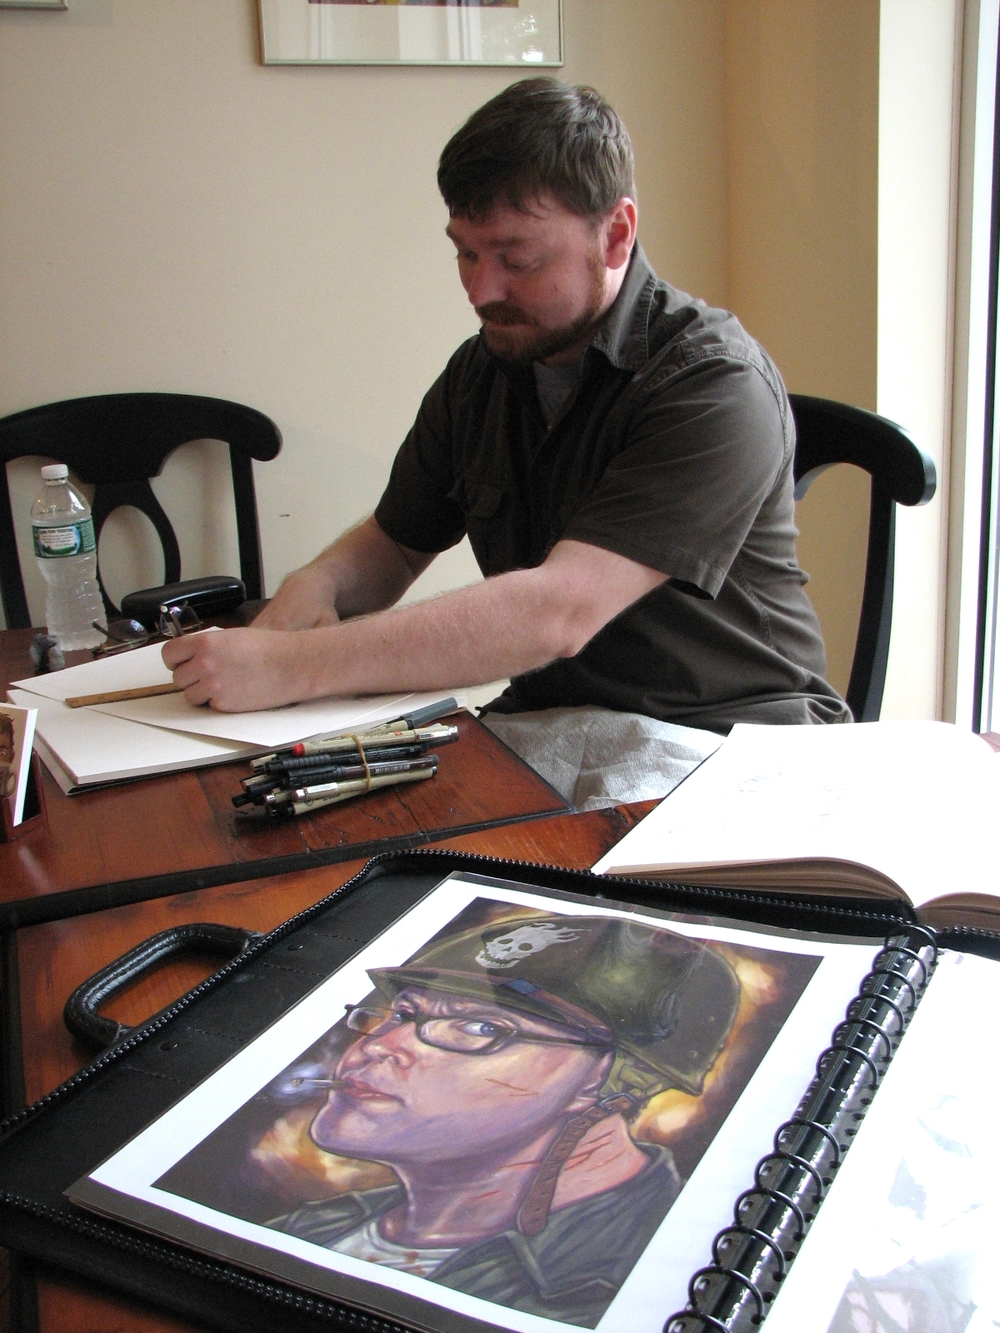 Illustrator Sean Classon demonstrates pen and ink drawing.